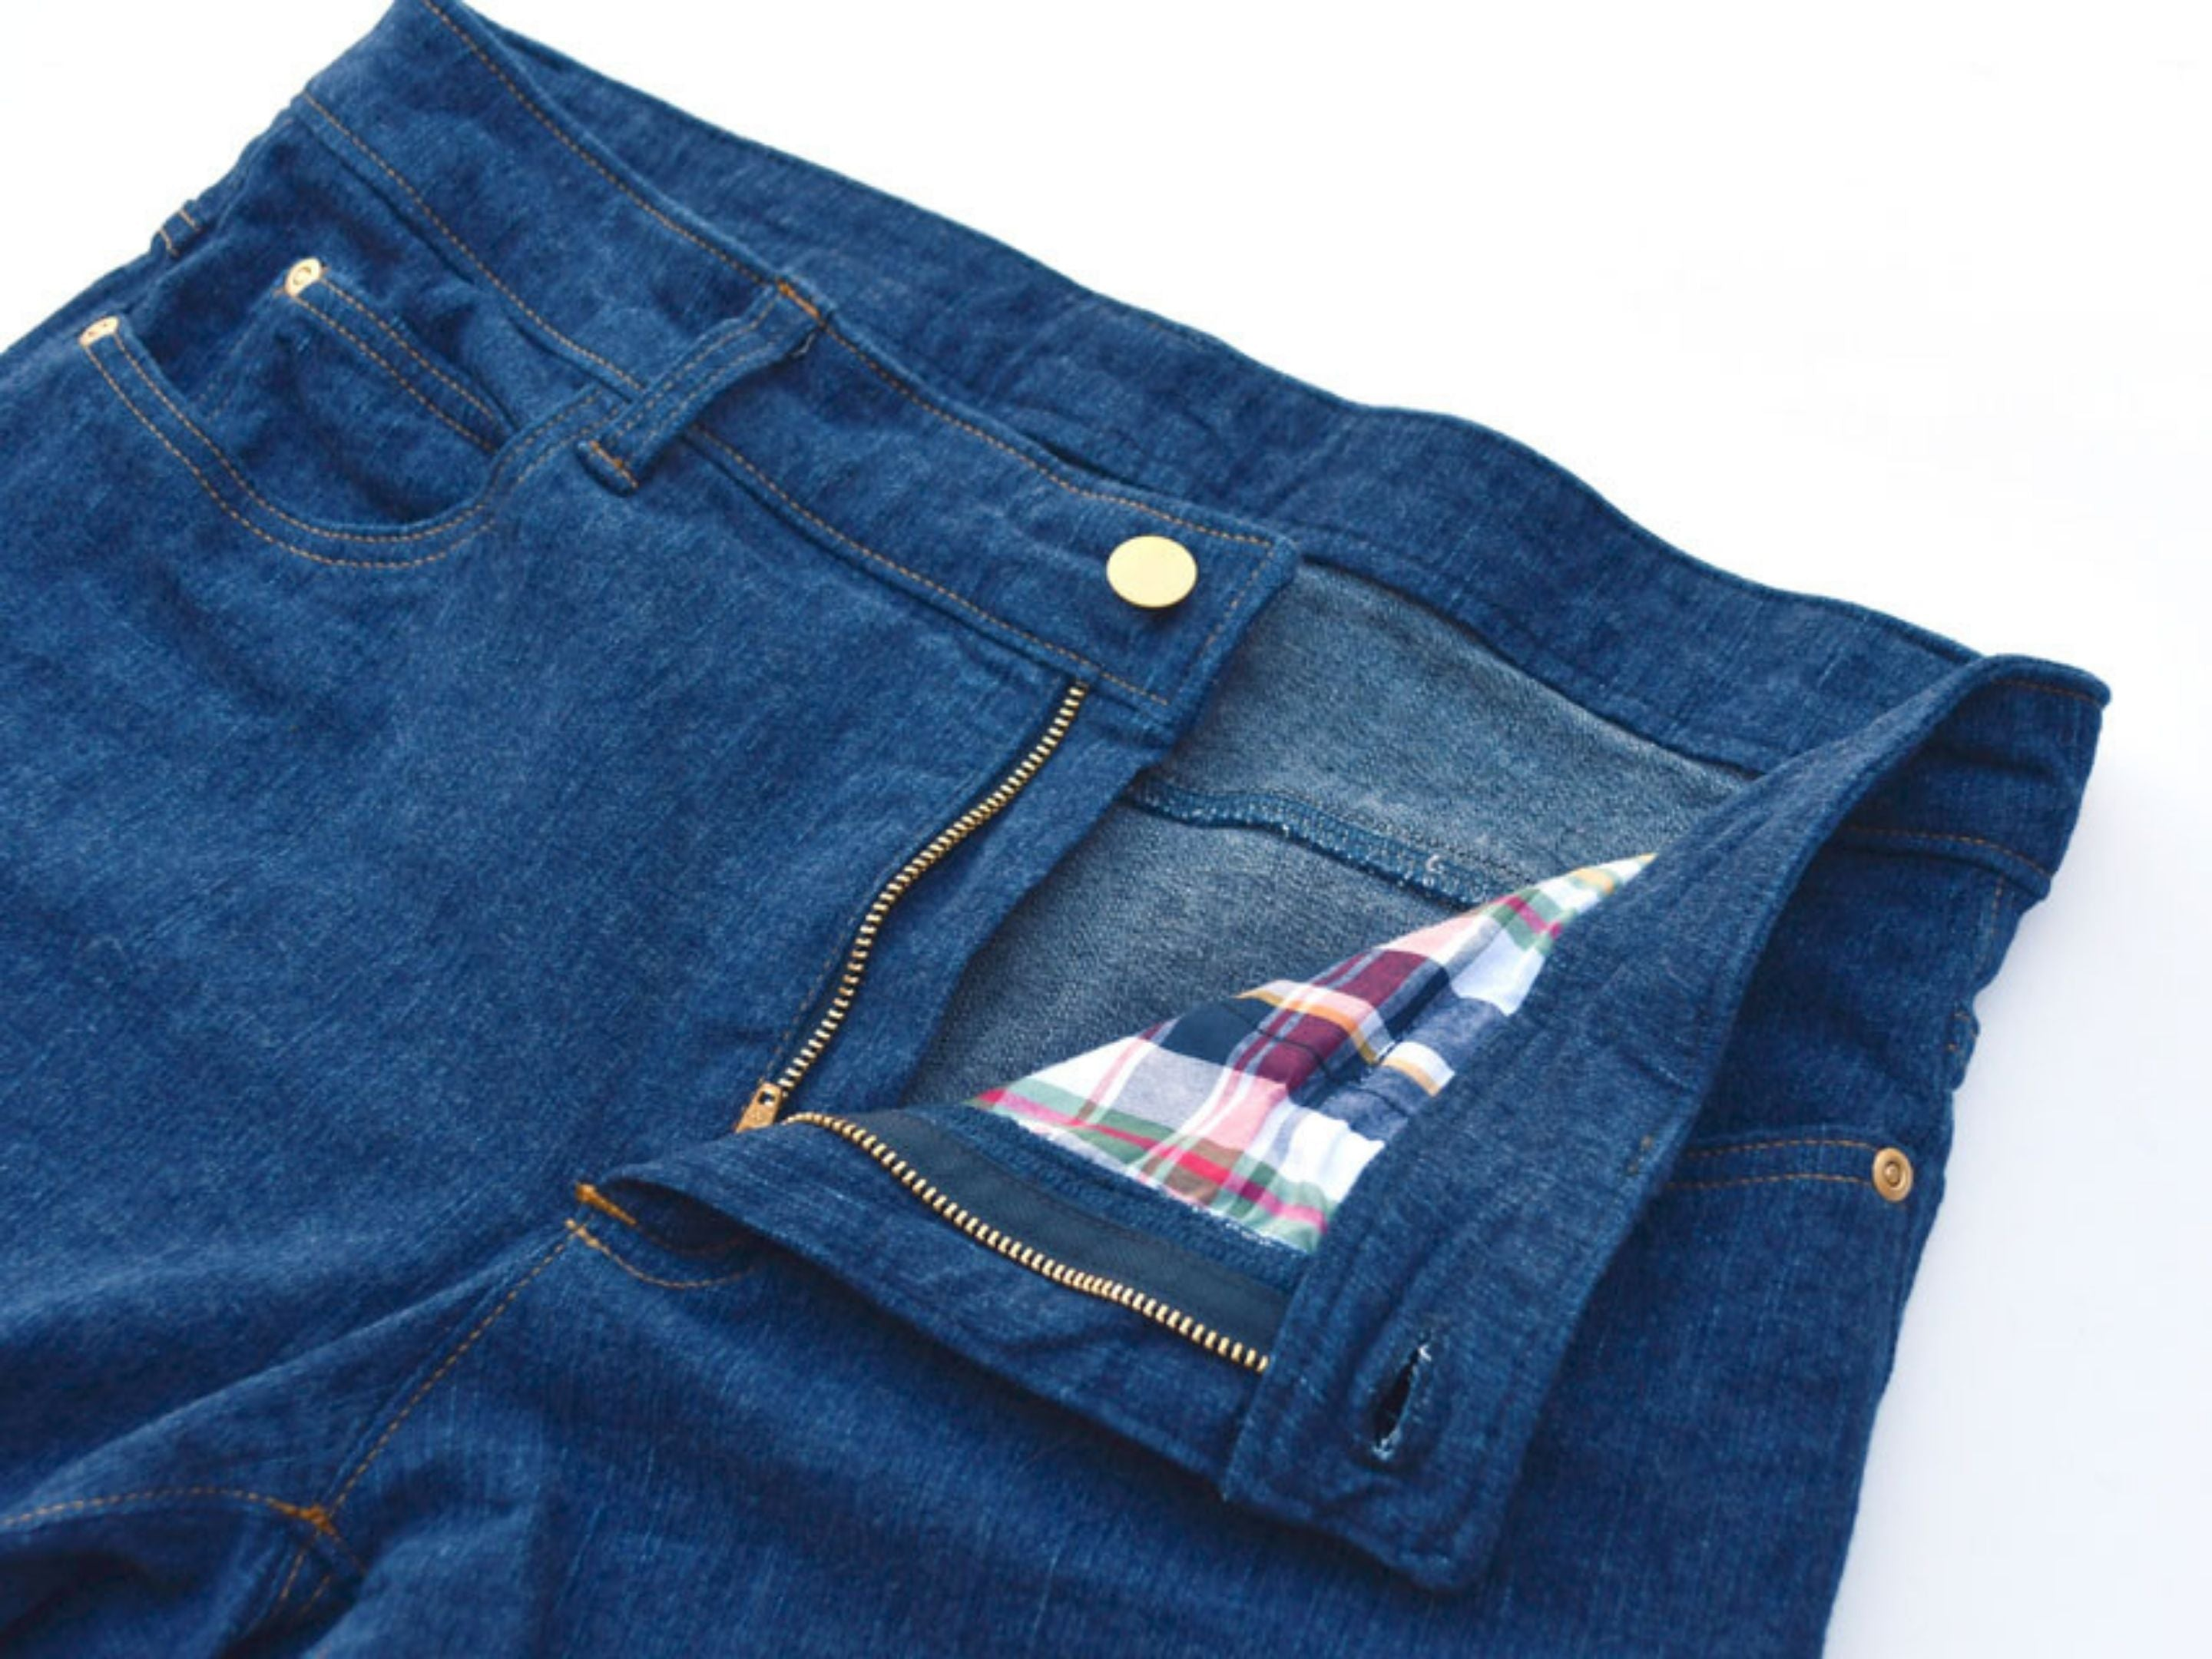 Completed Handmade Jeans with Topstitching and Hardware